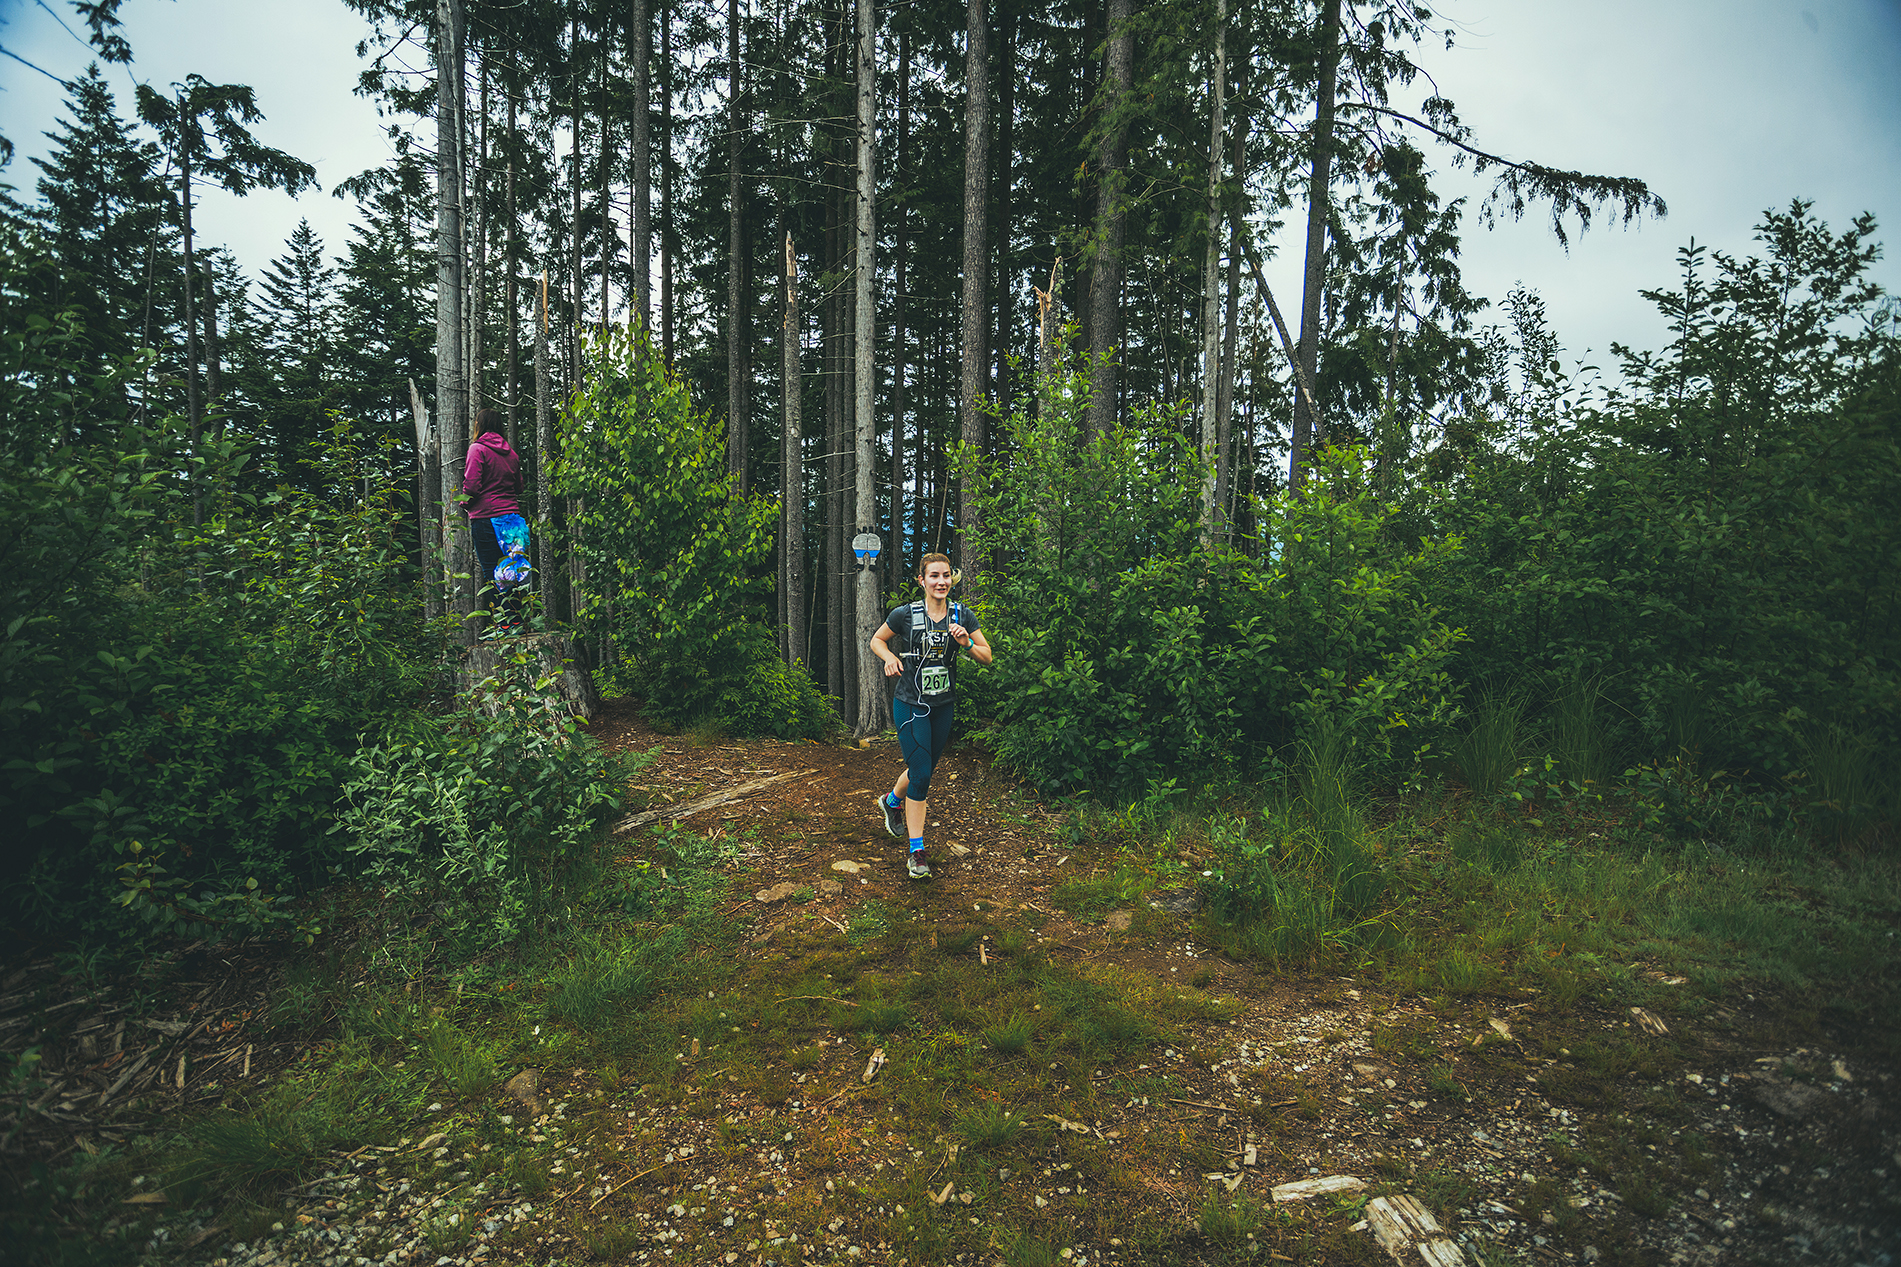 Fraser Valley Trail Races - Bear Mountain - IMG_2685 by Brice Ferre Studio - Vancouver Portrait Adventure and Athlete Photographer.jpg